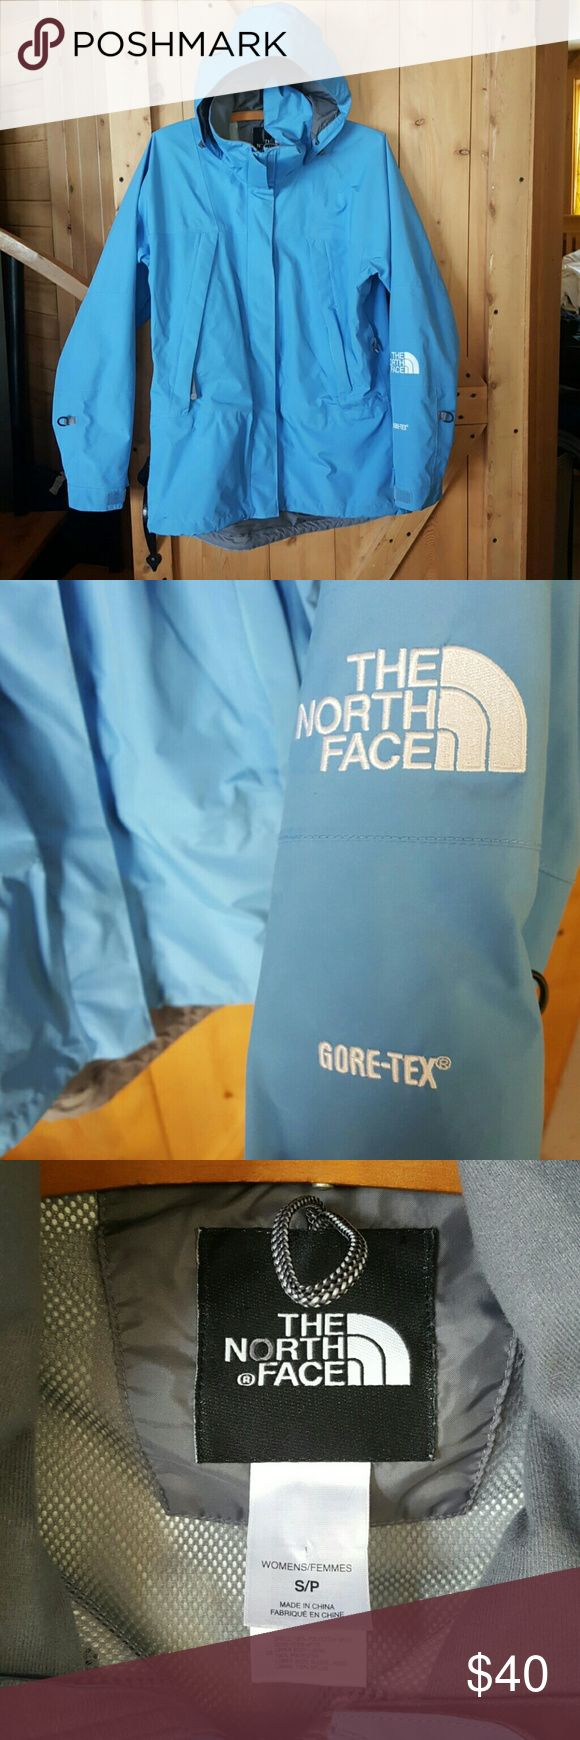 North Face Windbreaker or Raincoat North Face Windbreaker or Raincoat tag size small but runs a little bigger.  Great condition! North Face Jackets & Coats